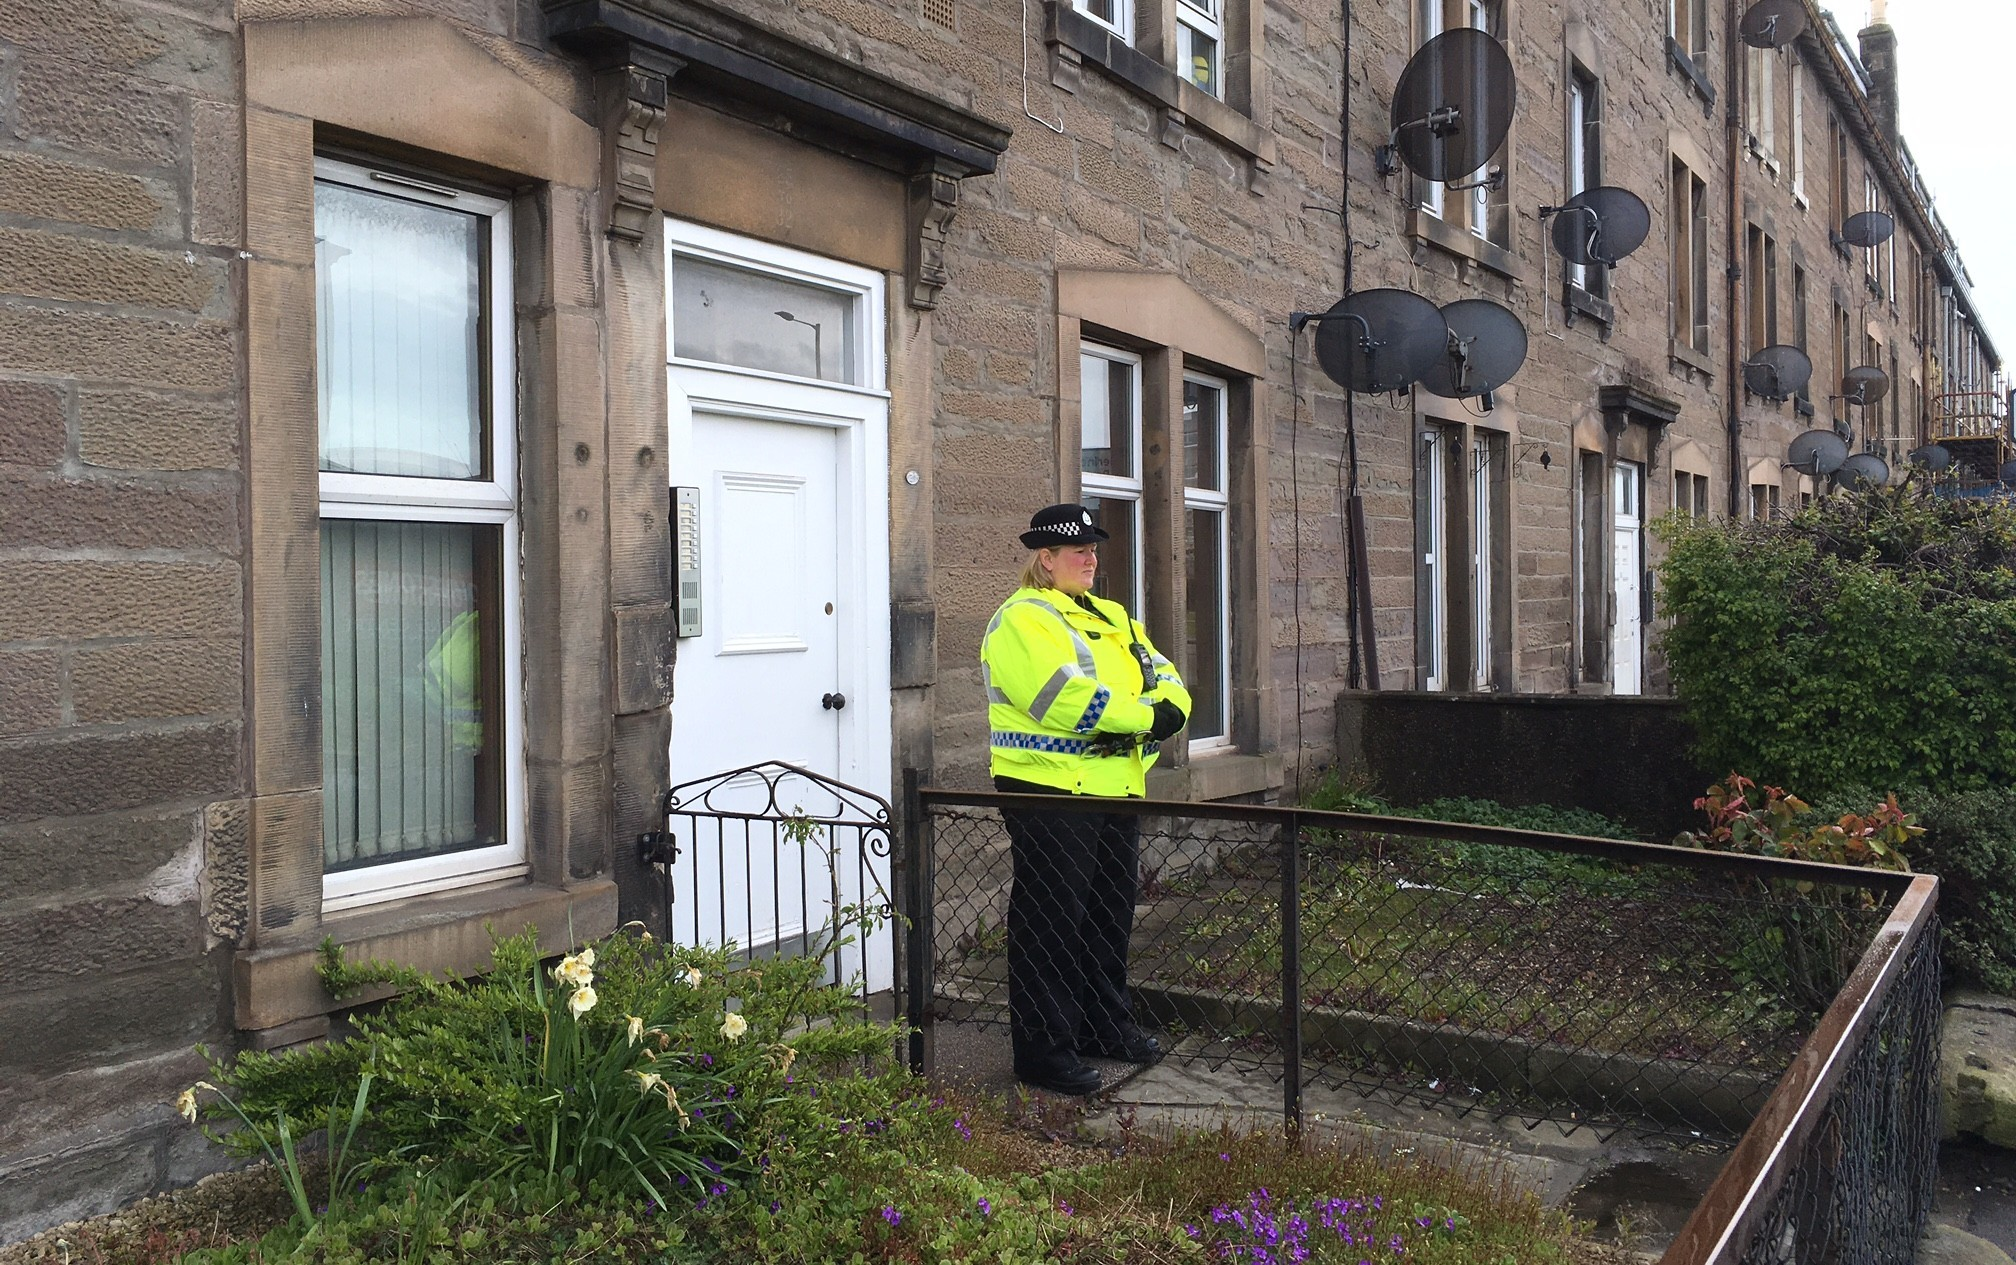 A police officer stands outside the home in Dunkeld Road where a woman was found dead.